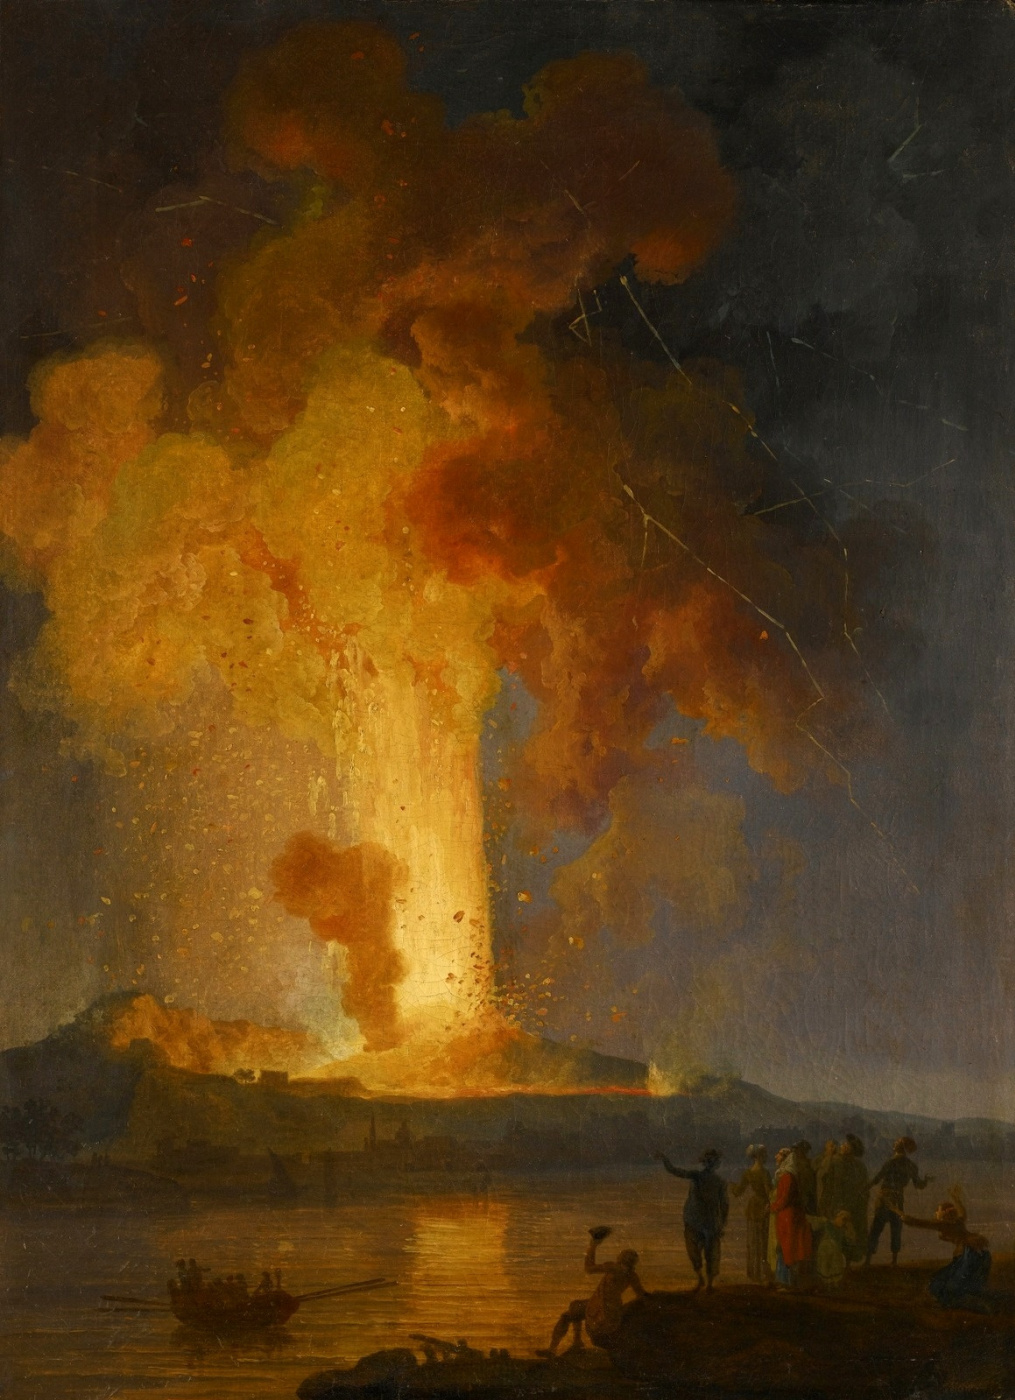 Pierre-Jacques Woller. Vesuvius eruption at night with viewers in the foreground.